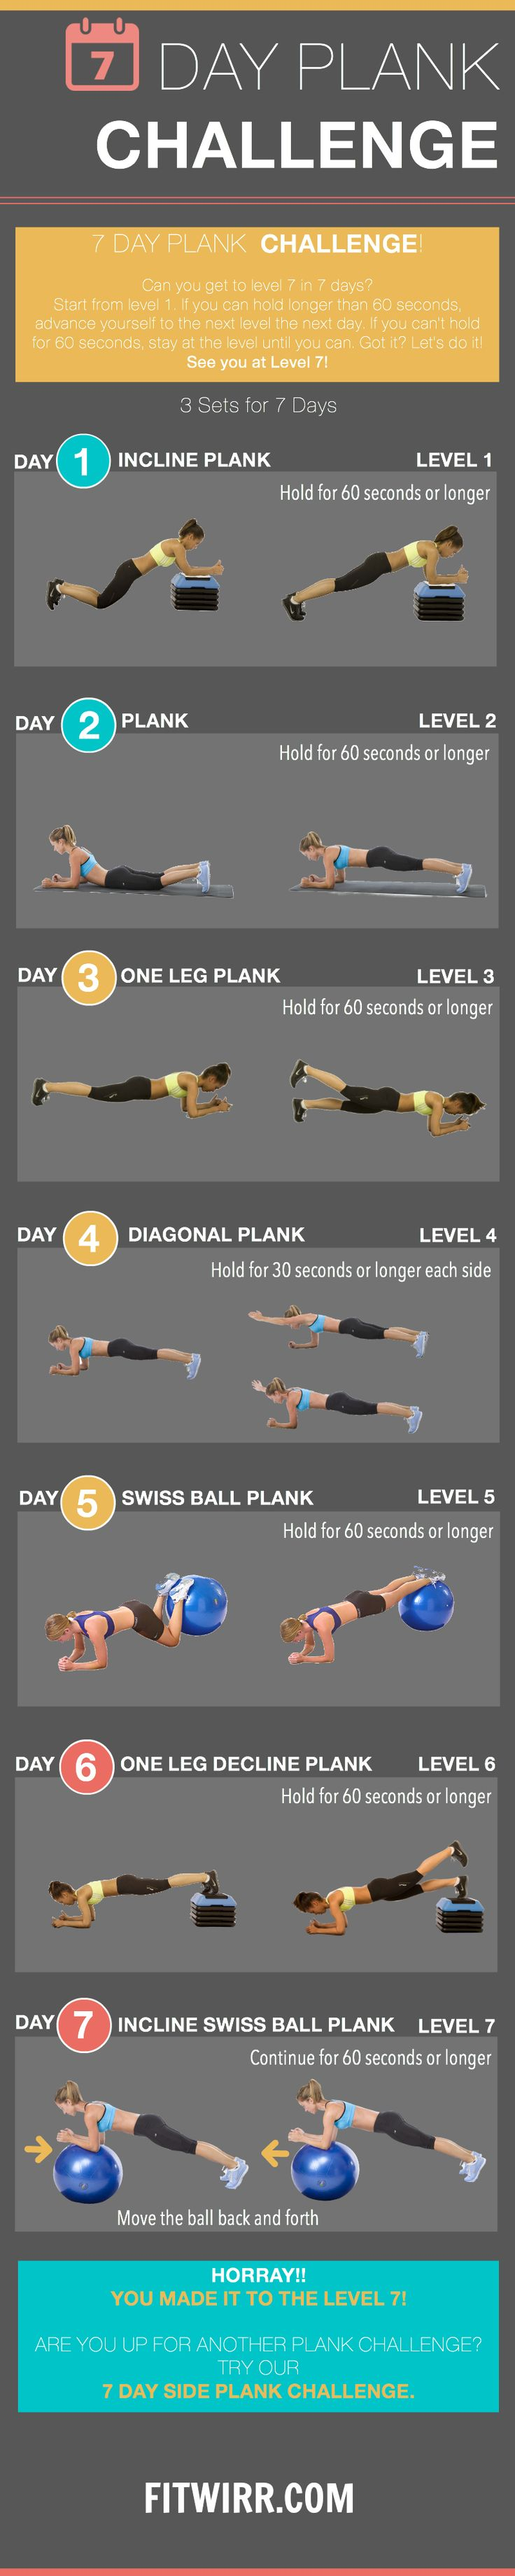 Plank Pose - Try Our planking challenge for 7 days - core strength